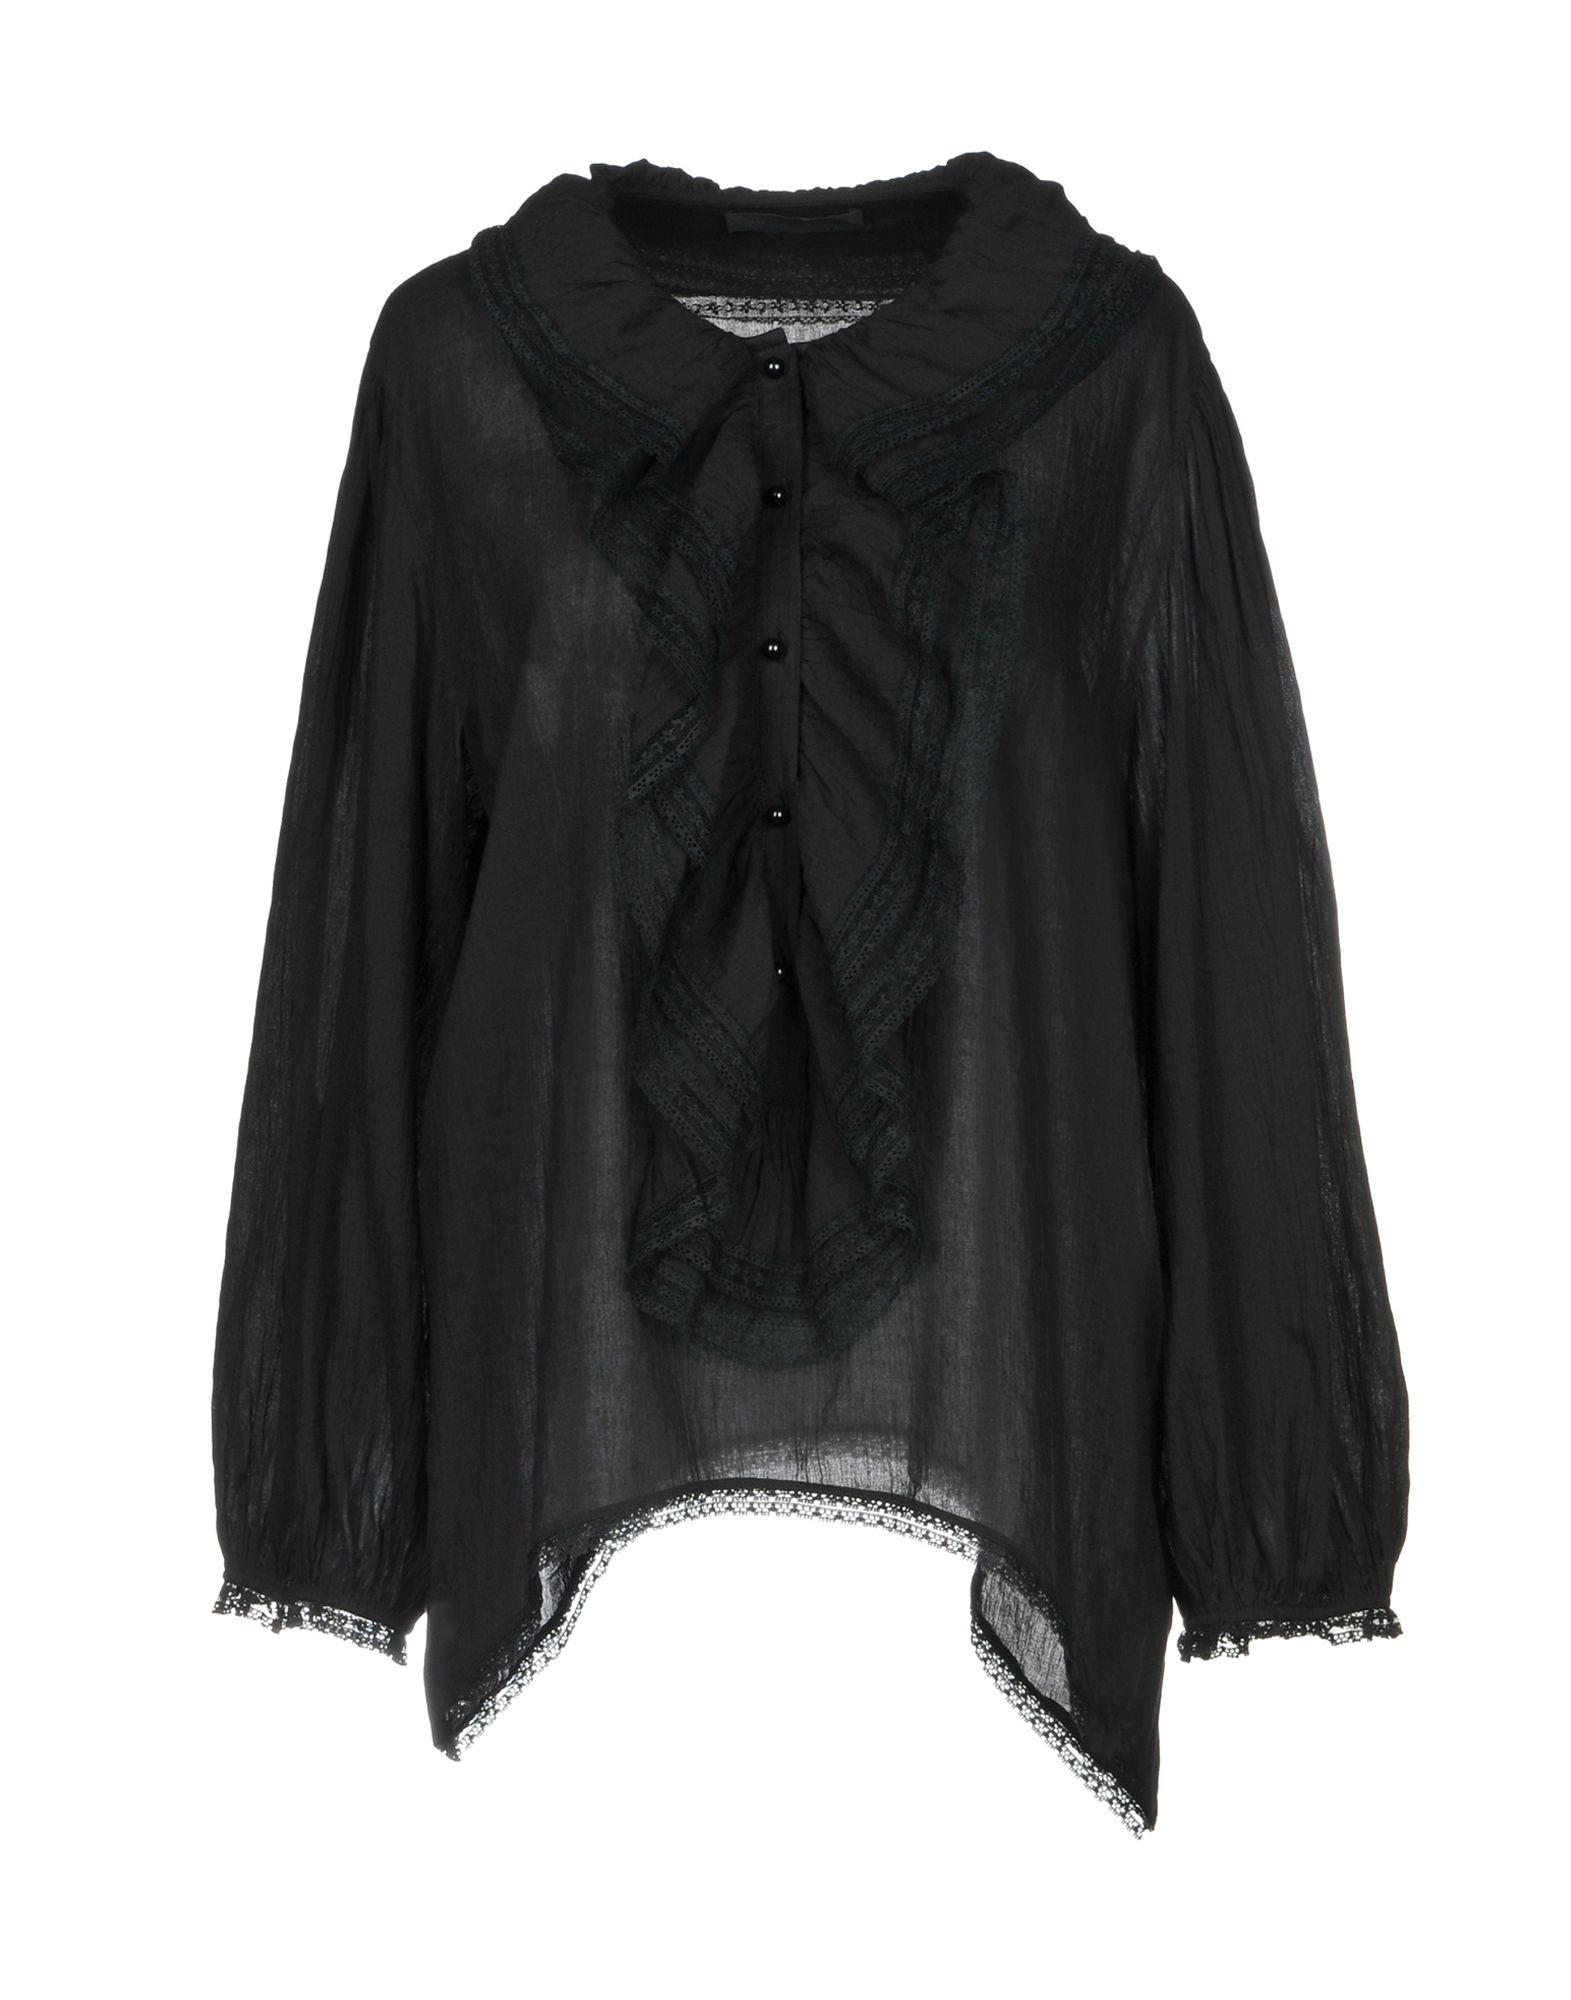 LAURENCE BRAS Blouse in Black